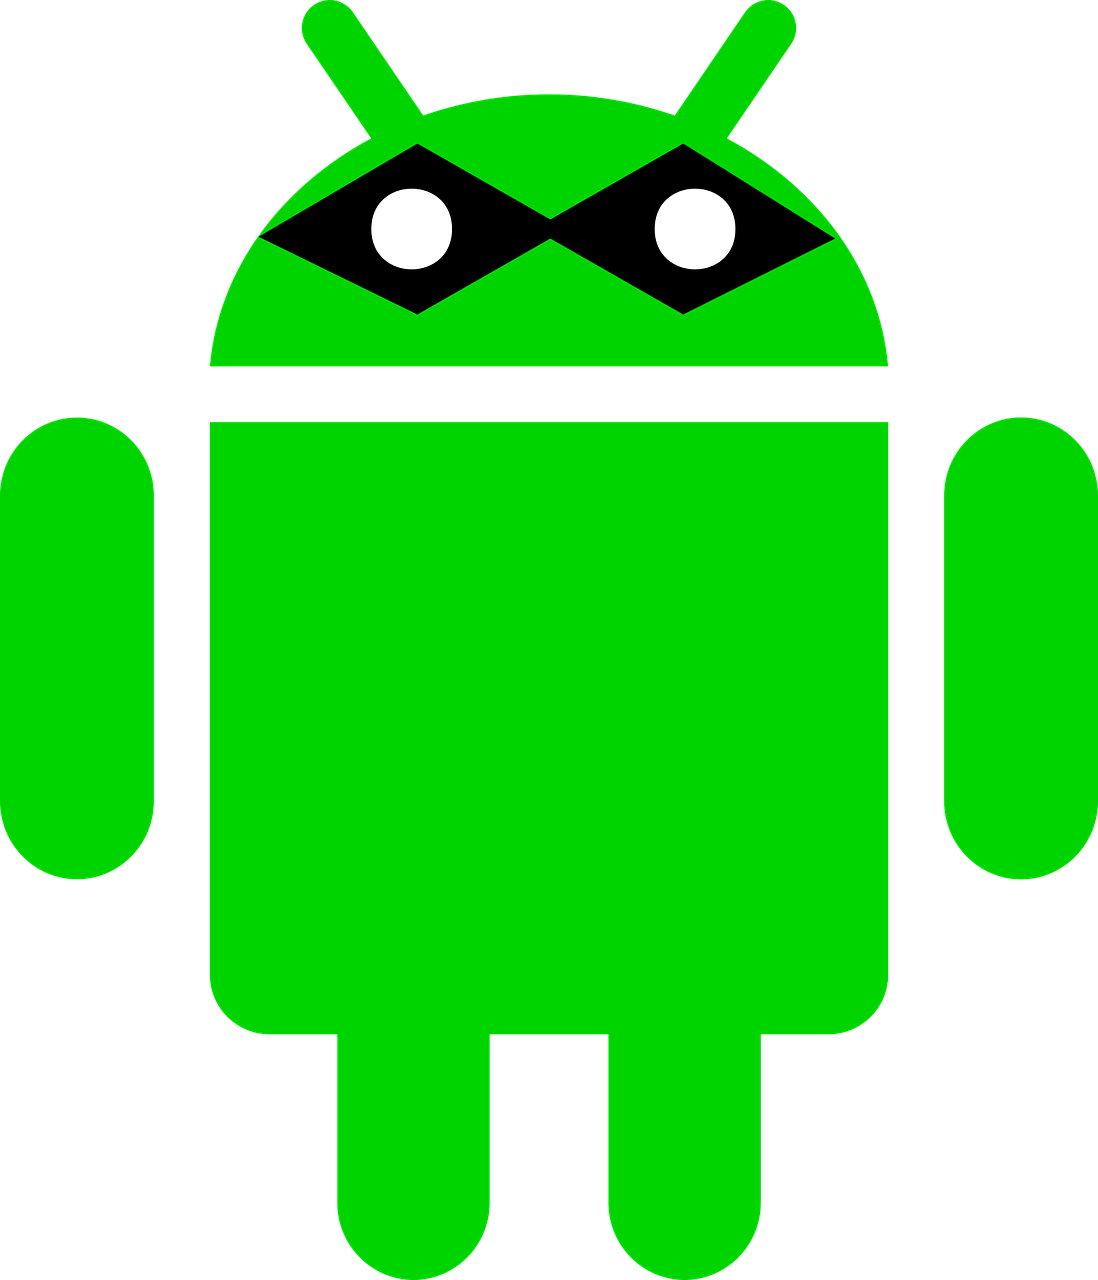 Android phones vulnerable to Qualcomm bugs - E Hacking News